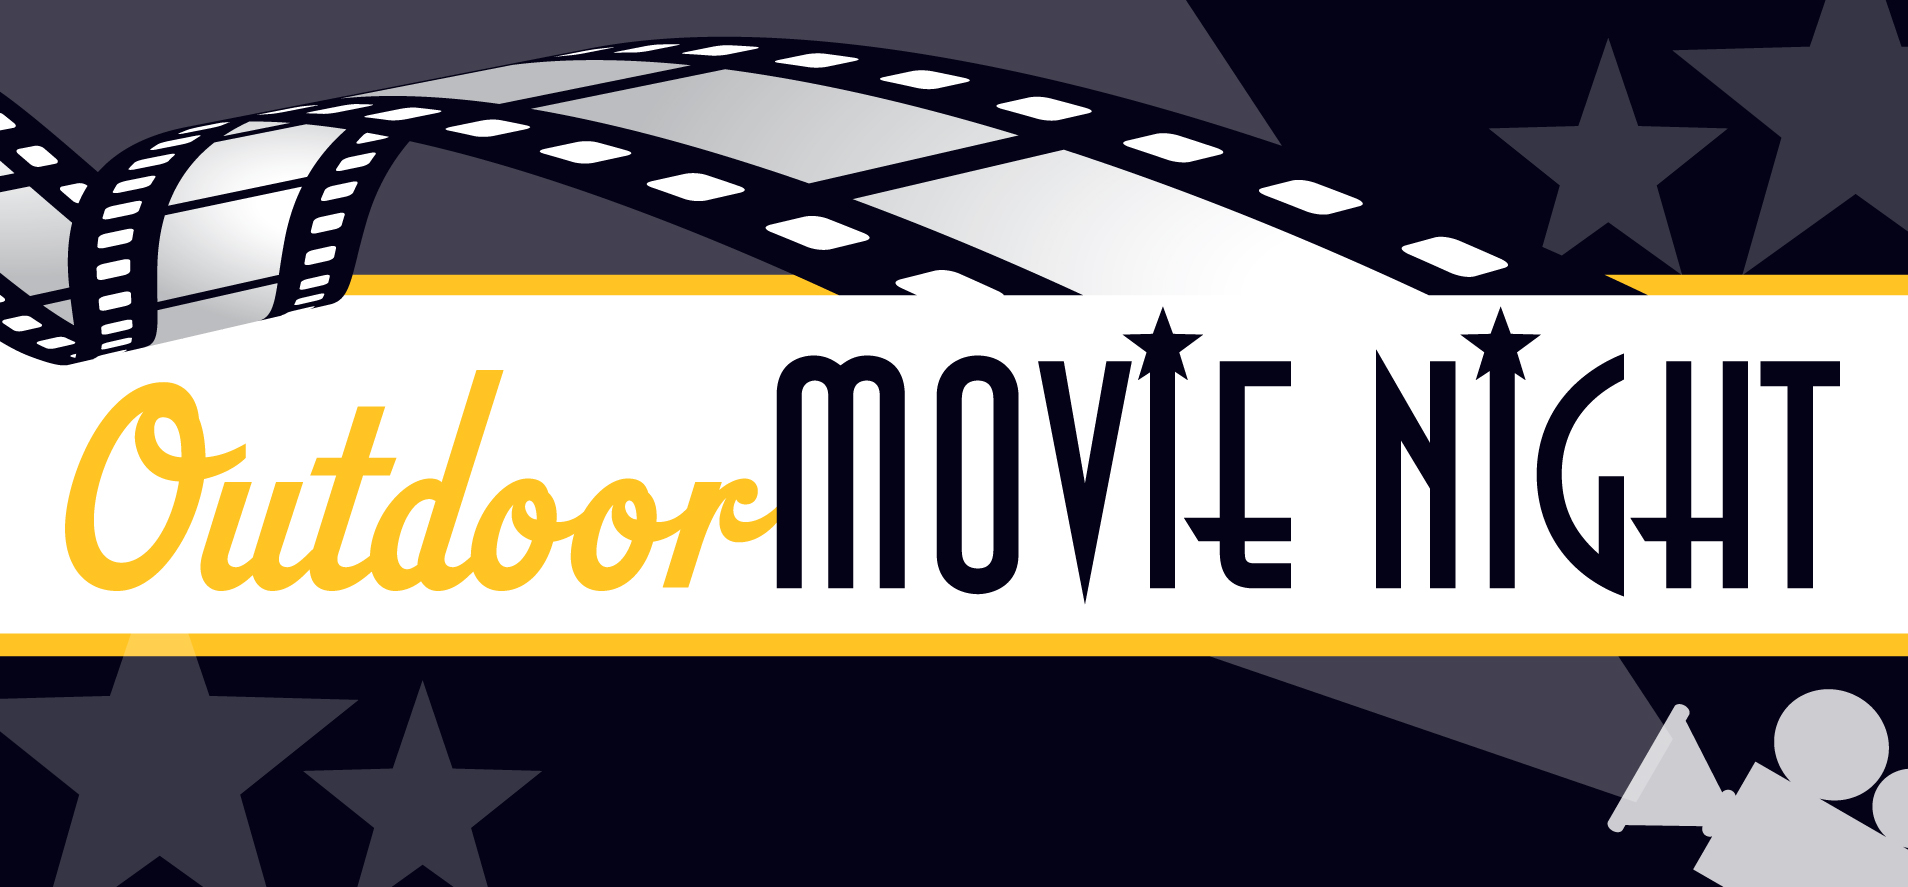 Image result for movie night clipart